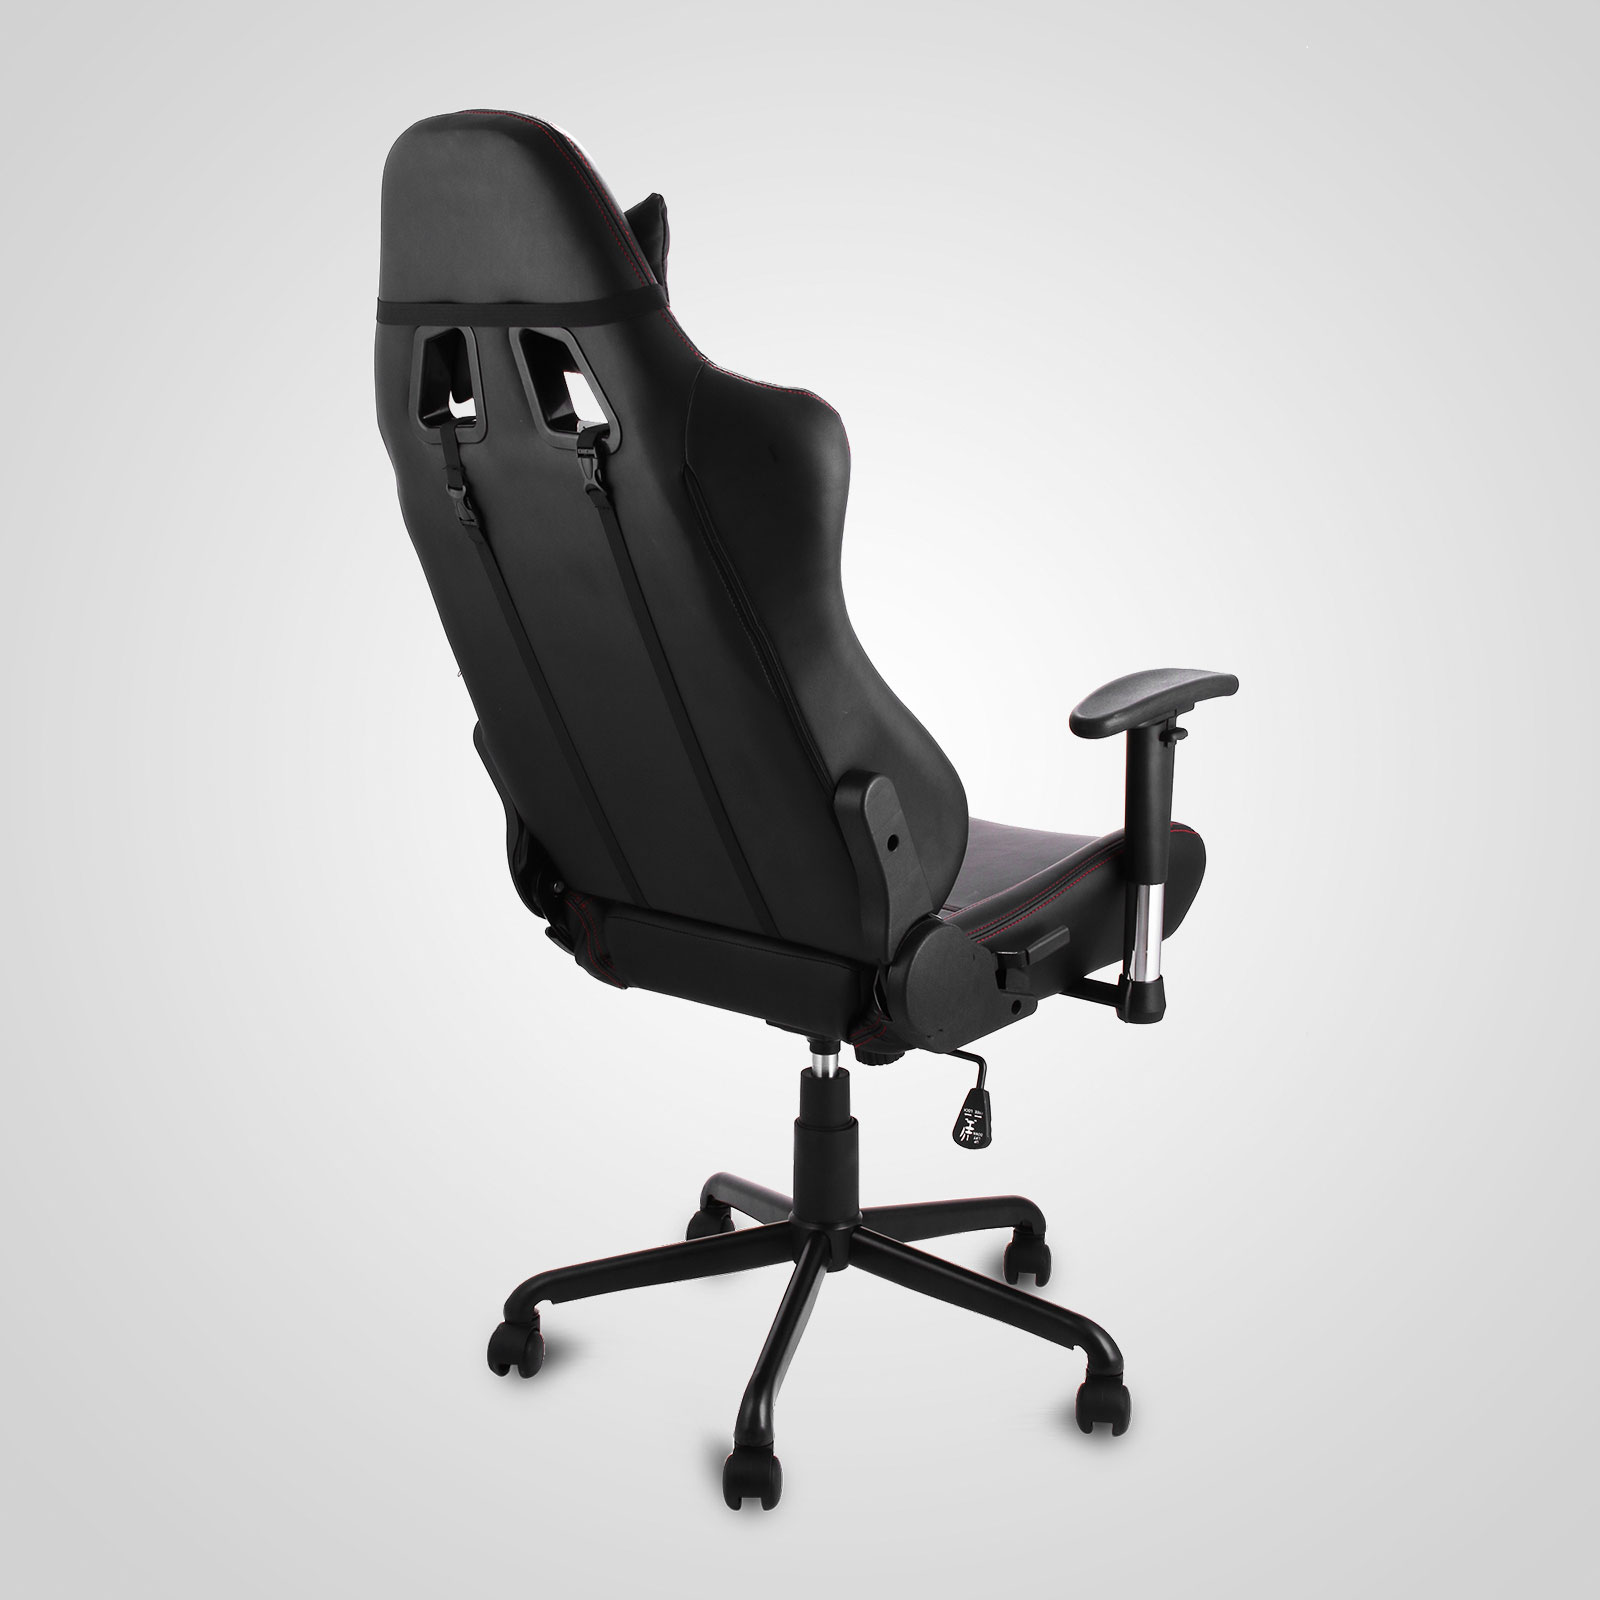 Racing fice Gaming puter Chair PU Leather Armrests High back